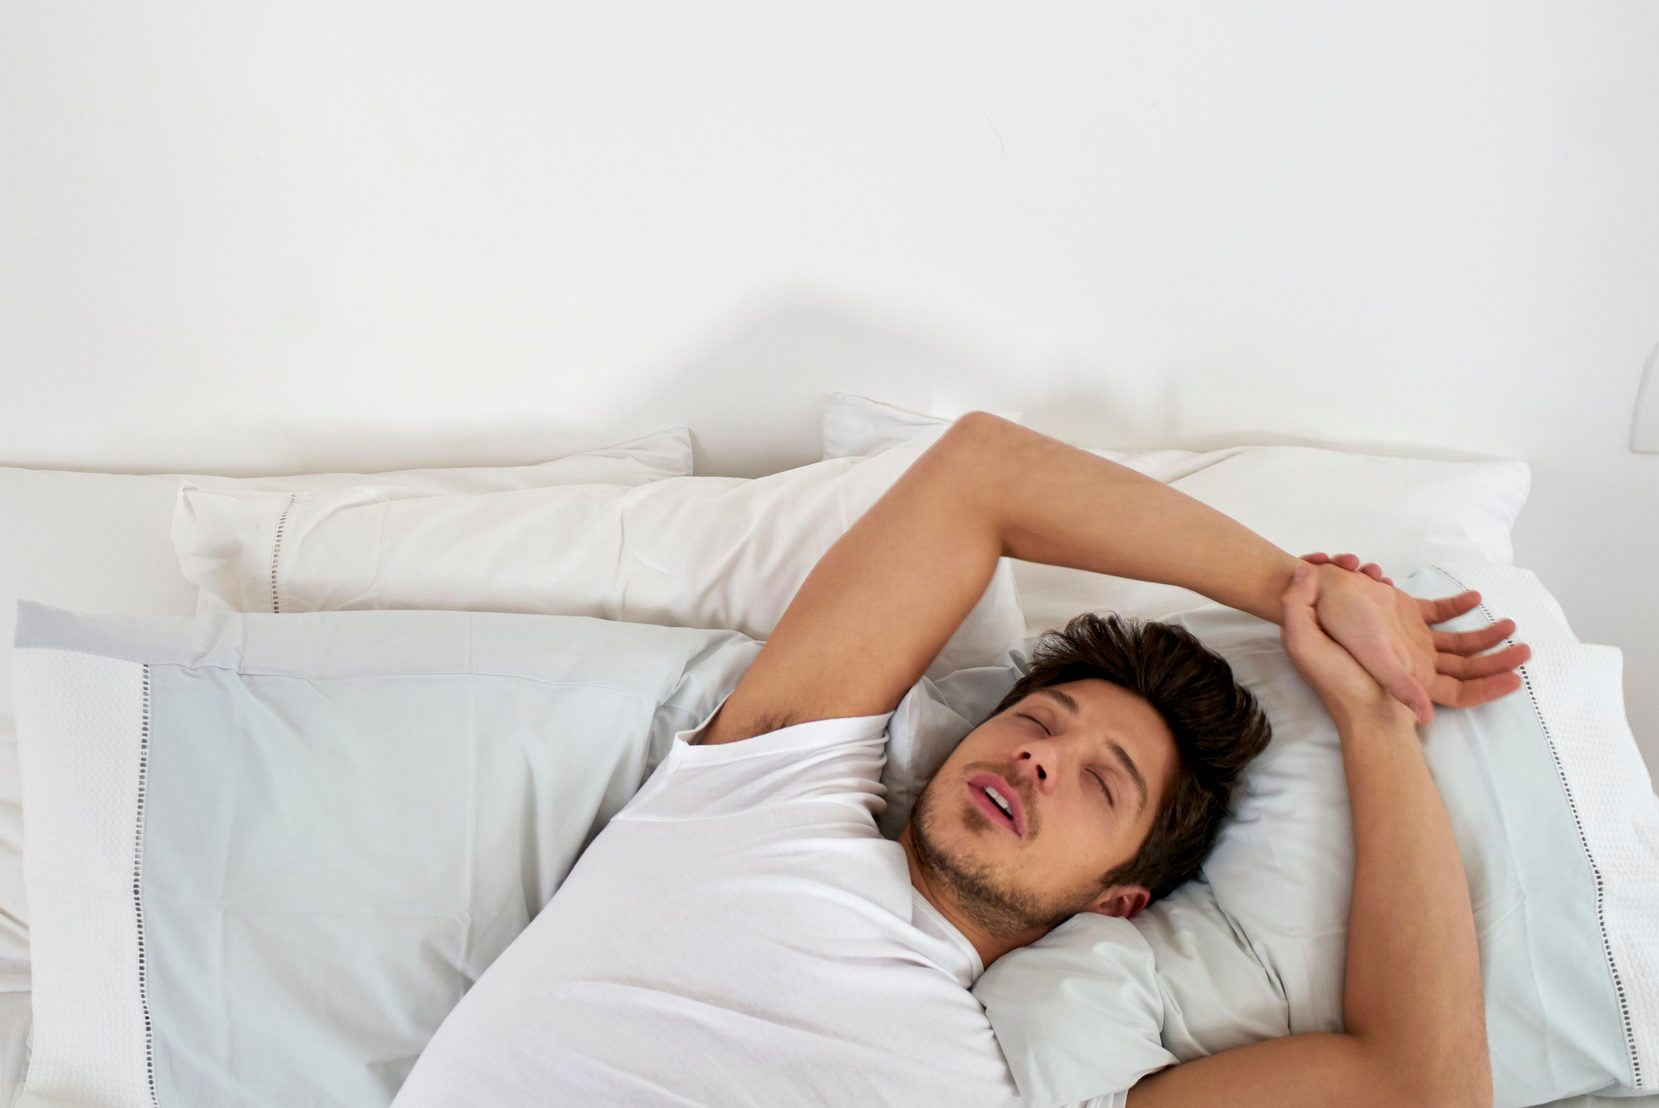 up view of man sleeping in bed